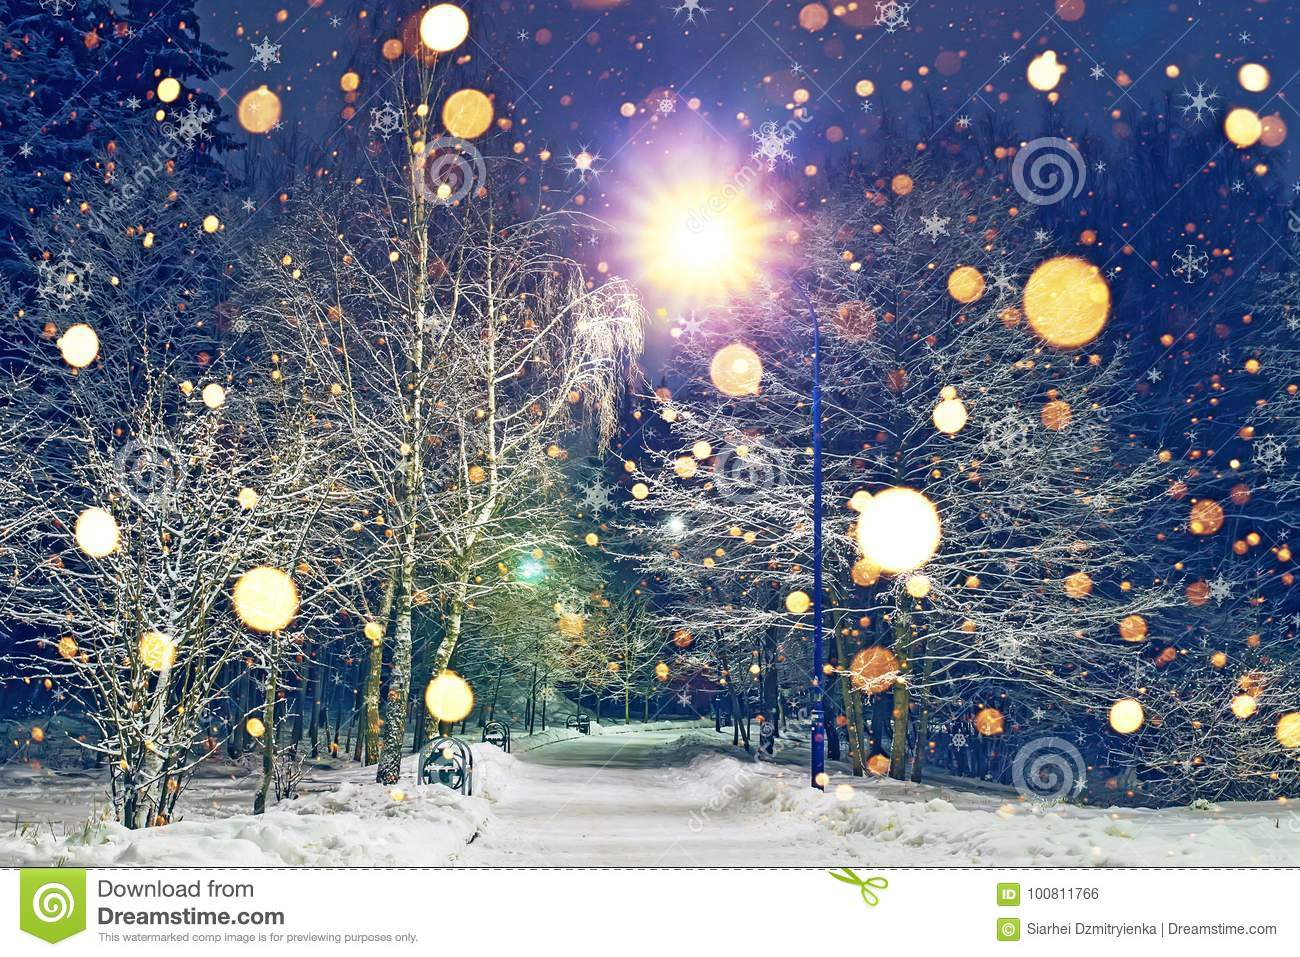 glowing snowflakes fall in winter night park theme of christmas and new year winter